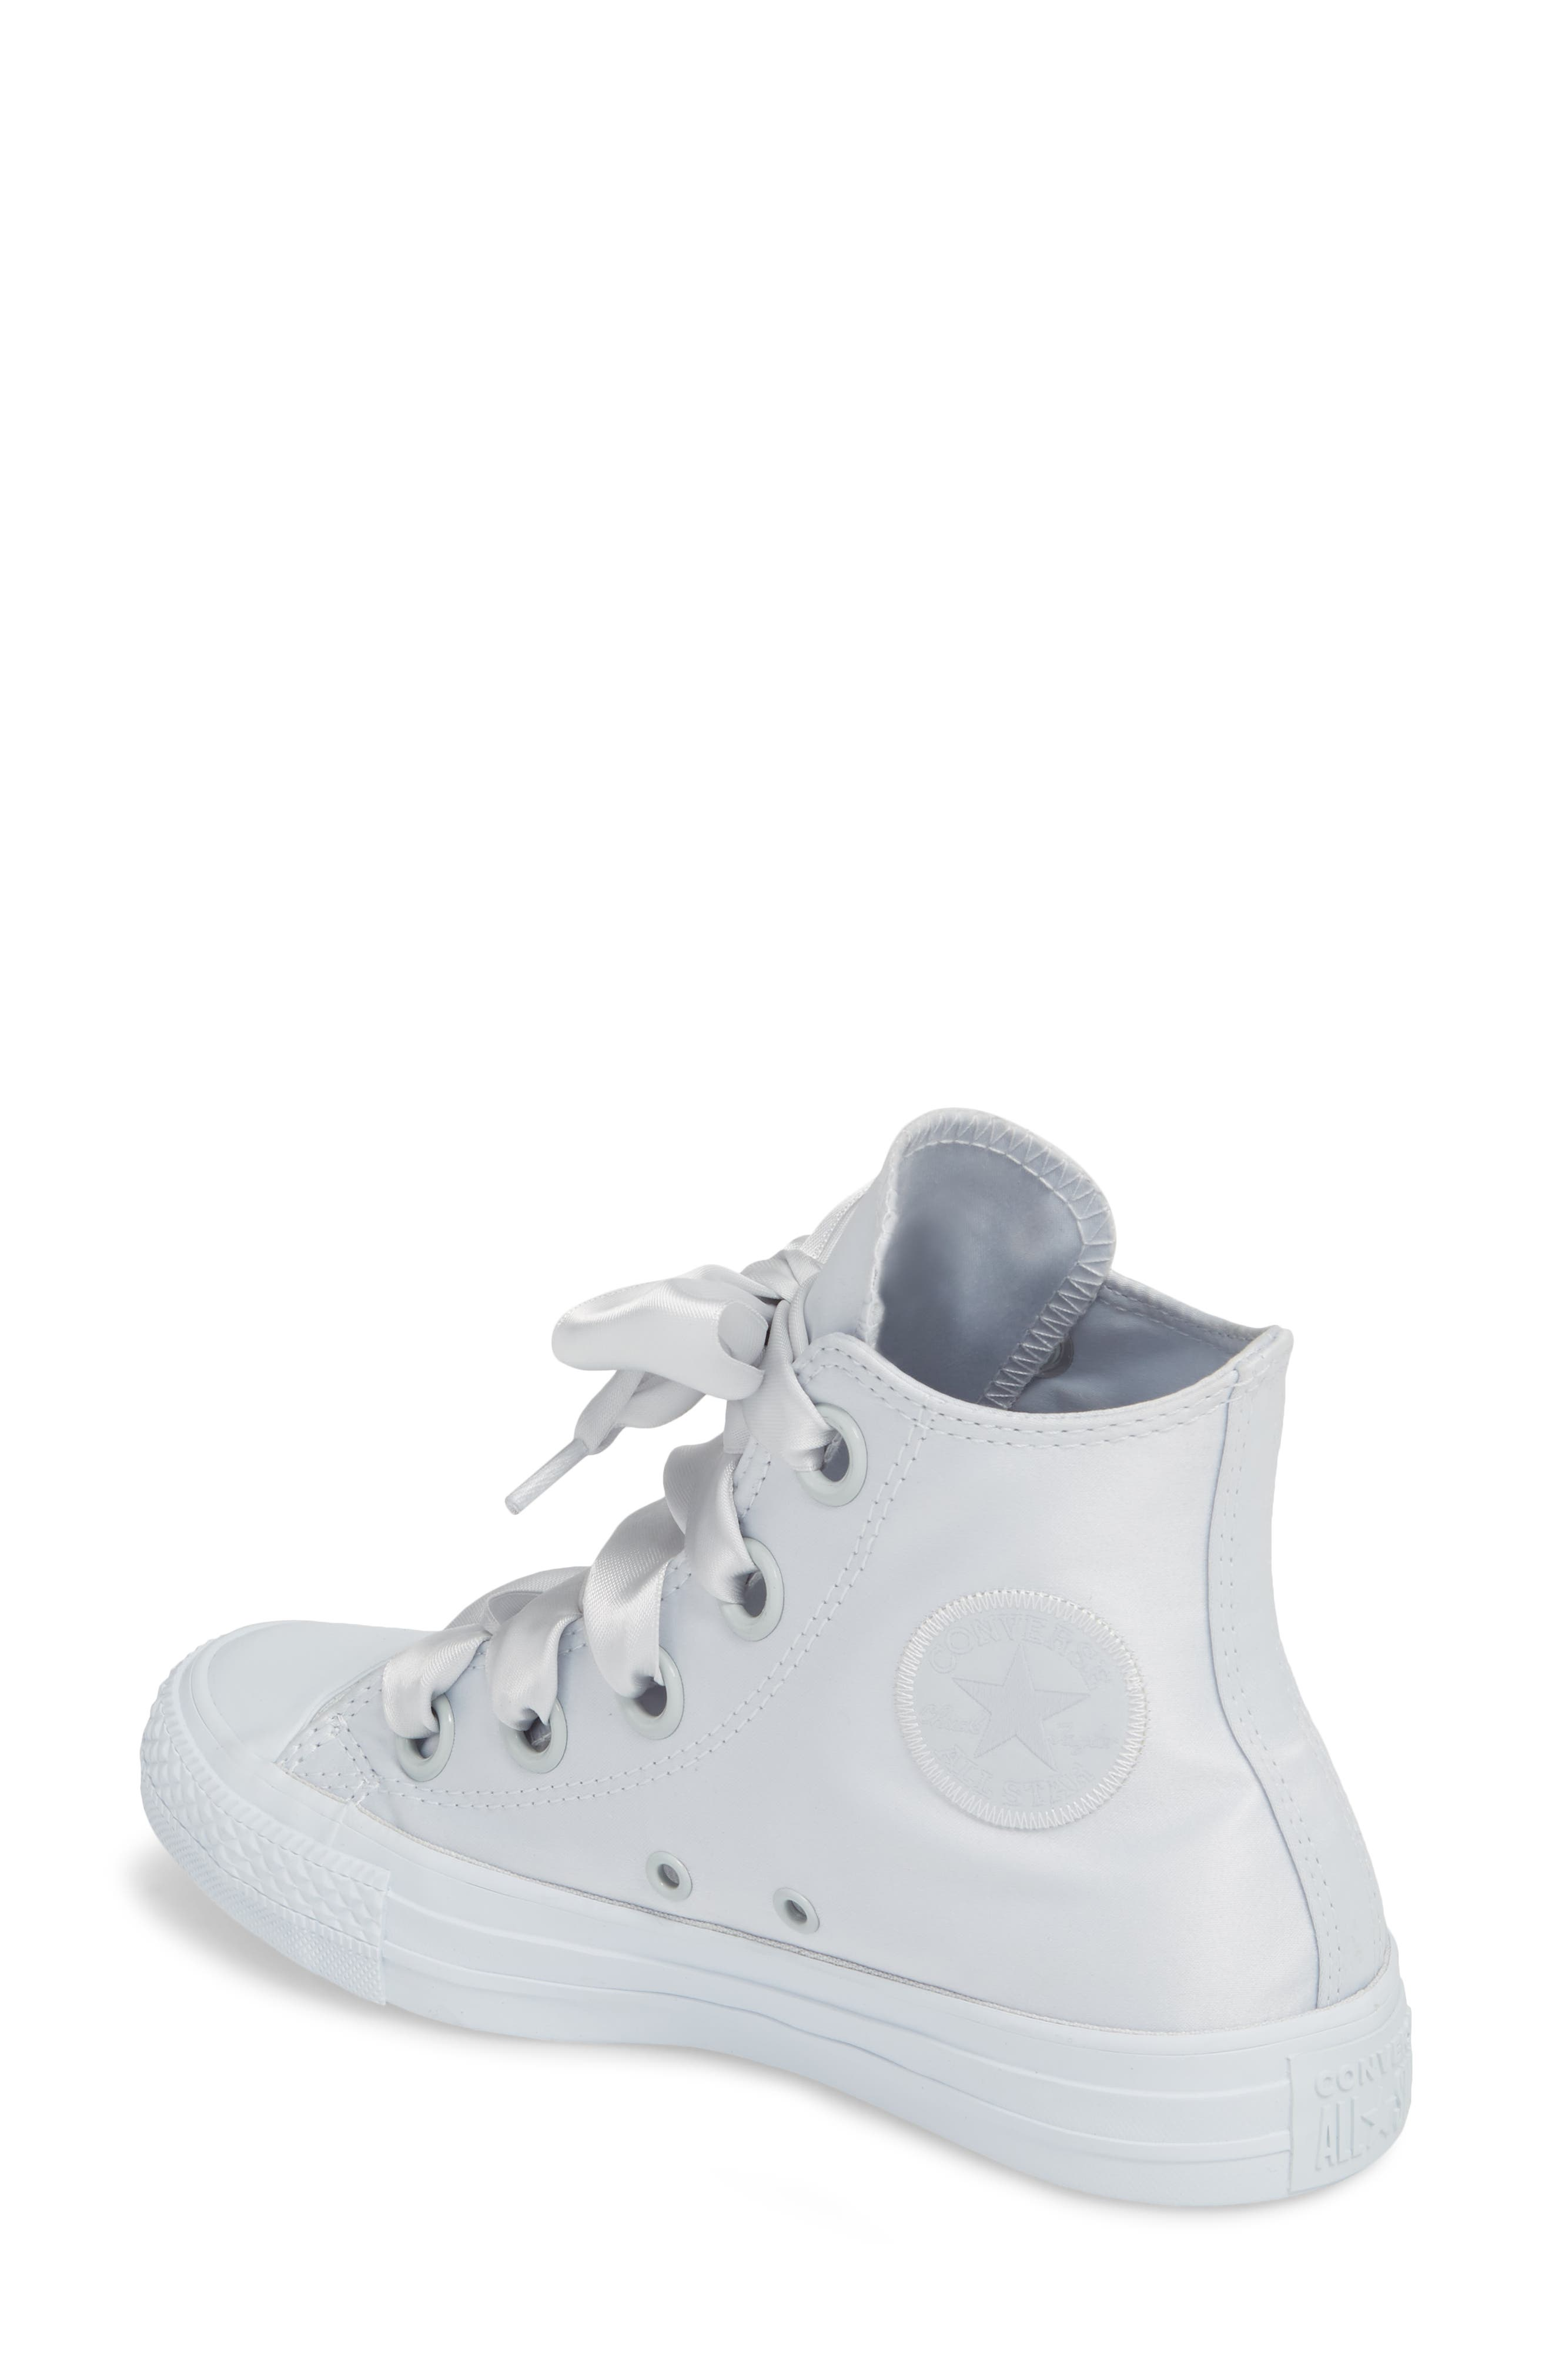 Chuck Taylor<sup>®</sup> All Star<sup>®</sup> Big Eyelet High Top Sneaker,                             Alternate thumbnail 2, color,                             040